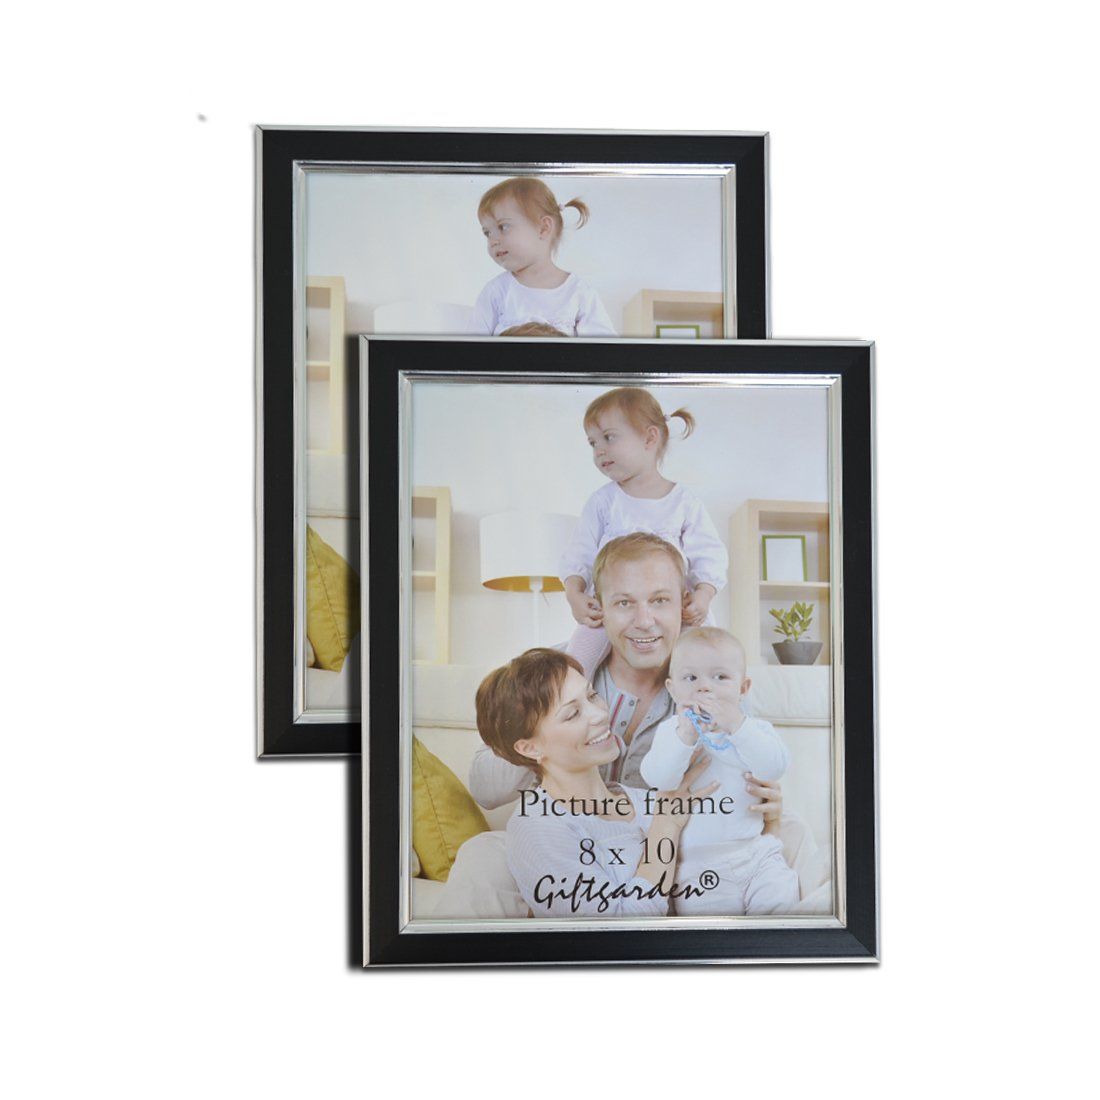 Giftgarden Multi 8x10 Picture Frames Collage Photos 8 x 10 Wall Frame Set of 2 pcs, PVC Lens